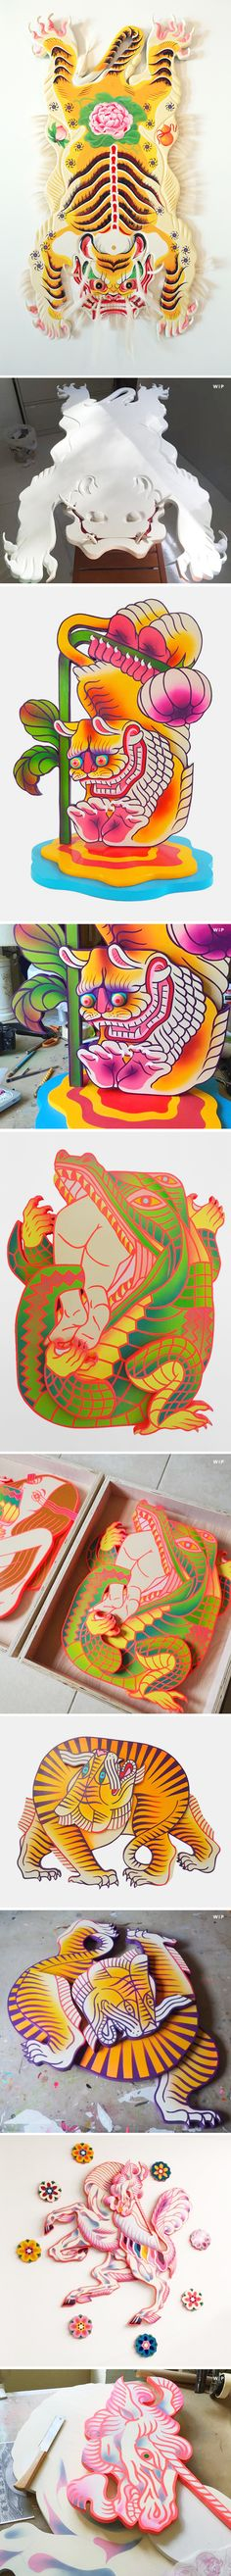 Tigers, alligators, unicorns… hell YES, to all of this goodness. These 3D paintings are the work of Florida based artist Boy Kong.